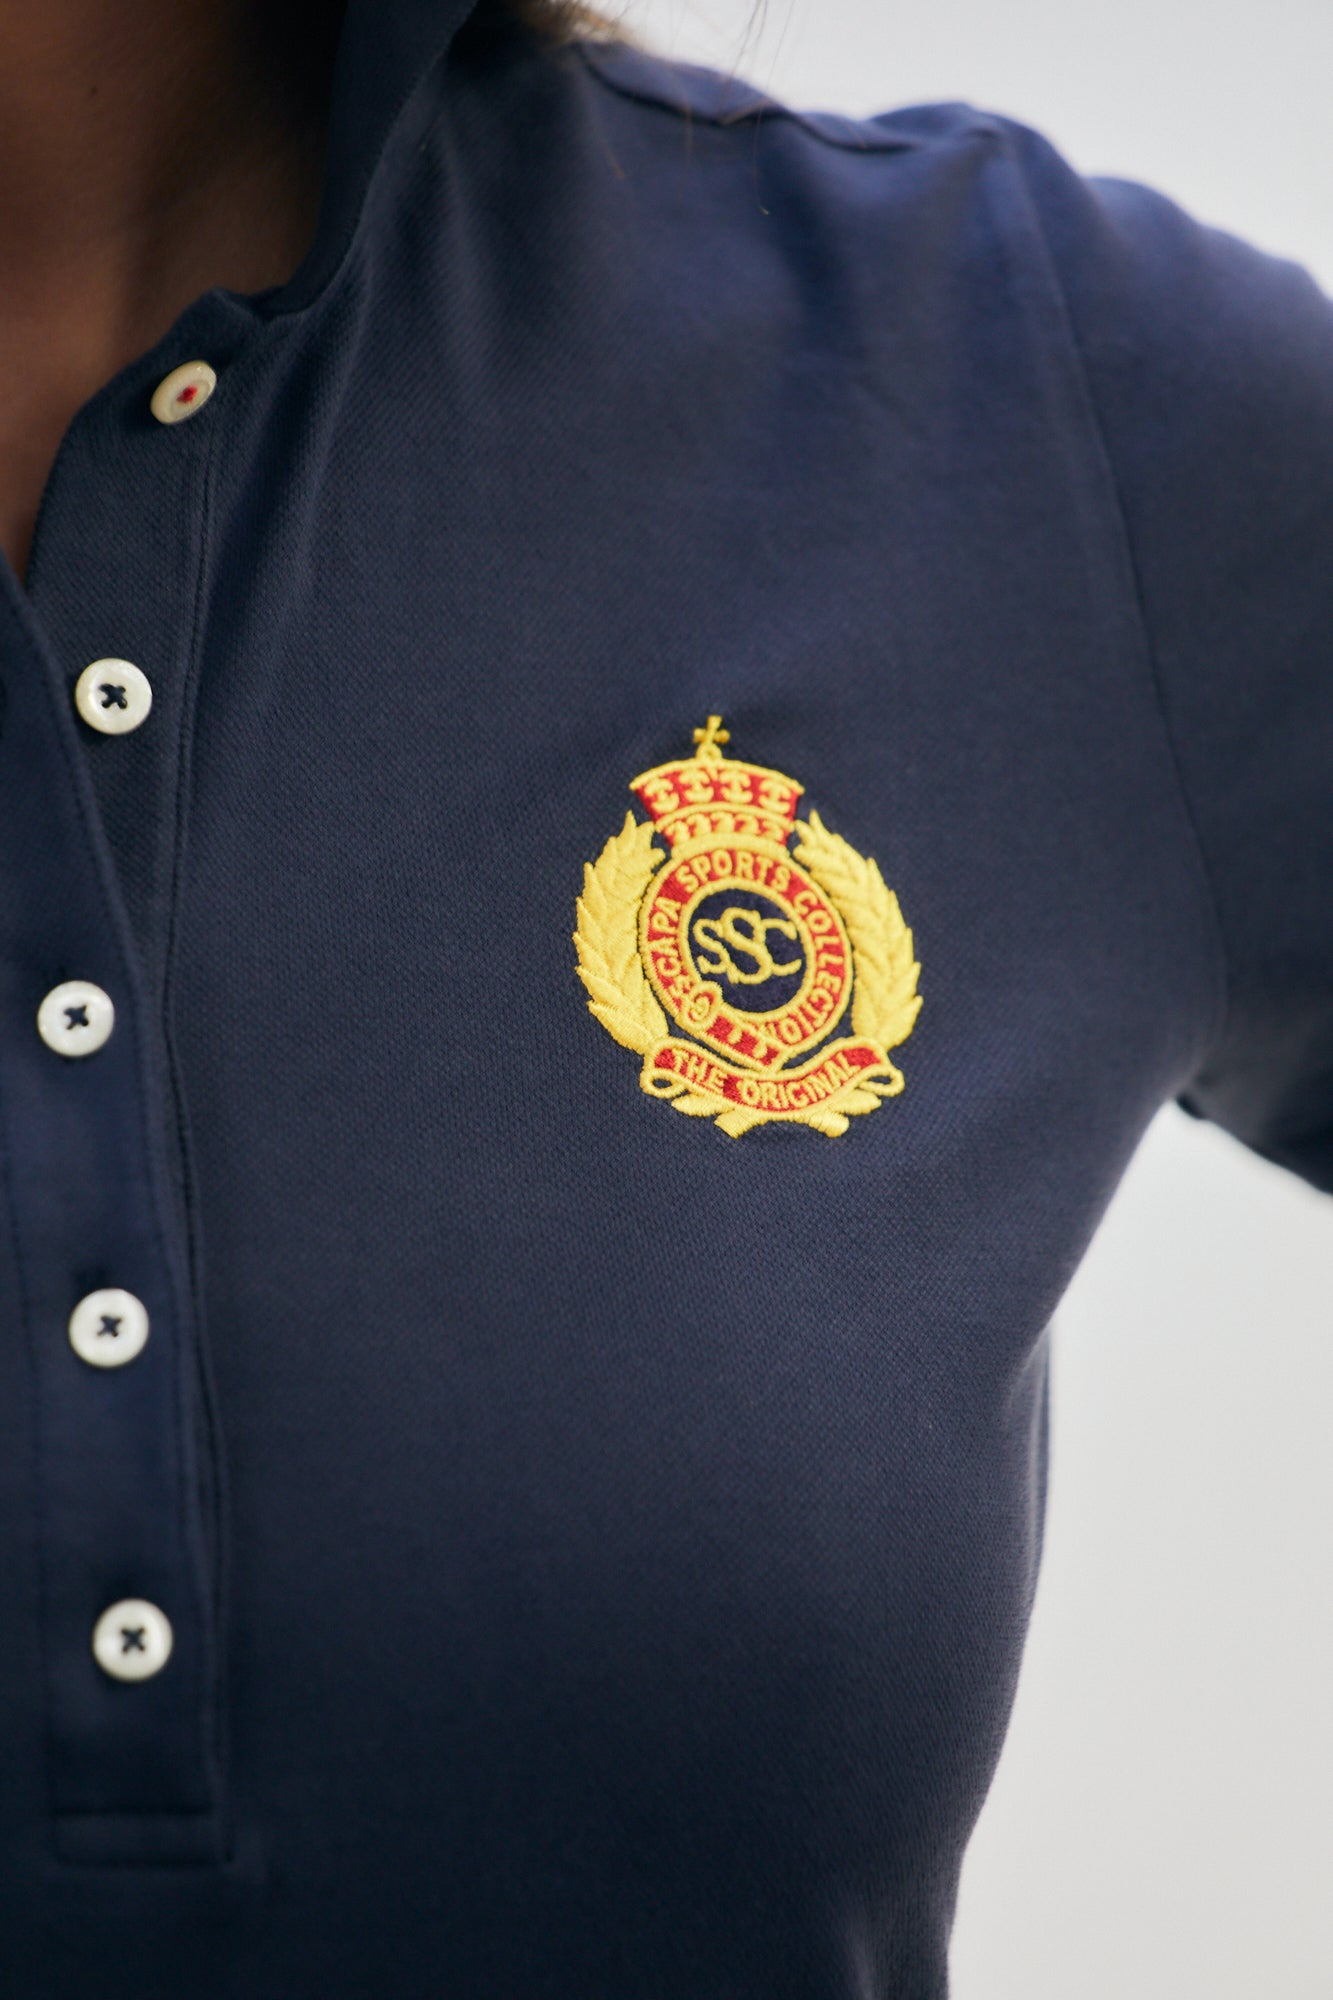 POLO SHIRT HALLY TEAM - Shirts - SCAPA FASHION - SCAPA OFFICIAL